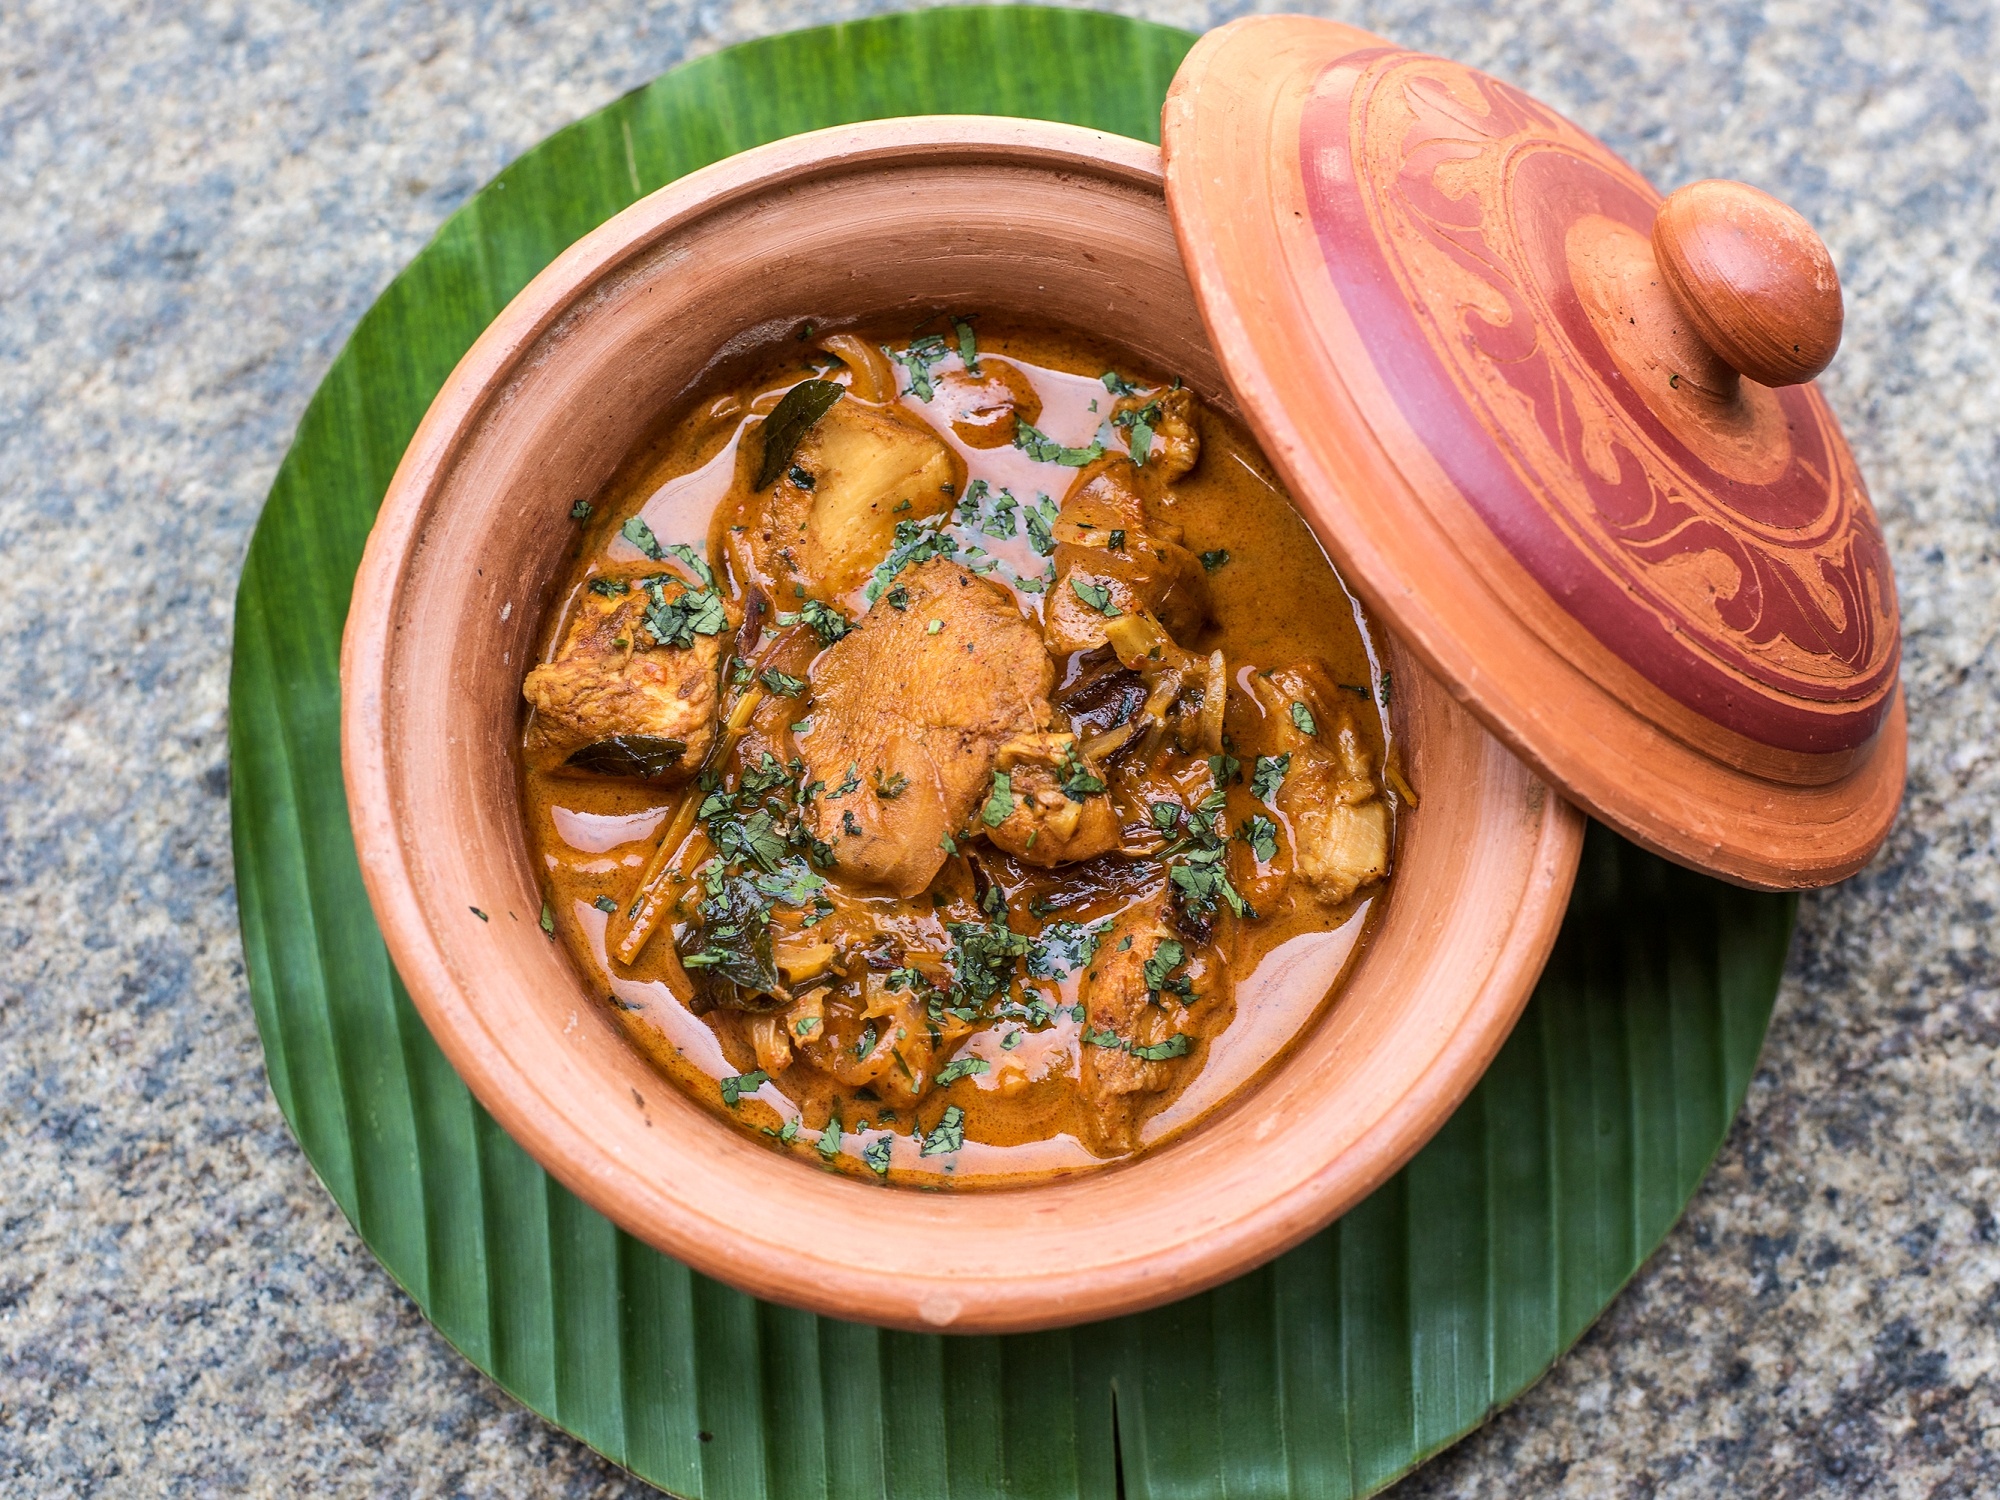 Sri lankan chicken curry recipe by galle fort hotel style in sri lanka sri lankan chicken curry recipe by galle fort hotel forumfinder Gallery